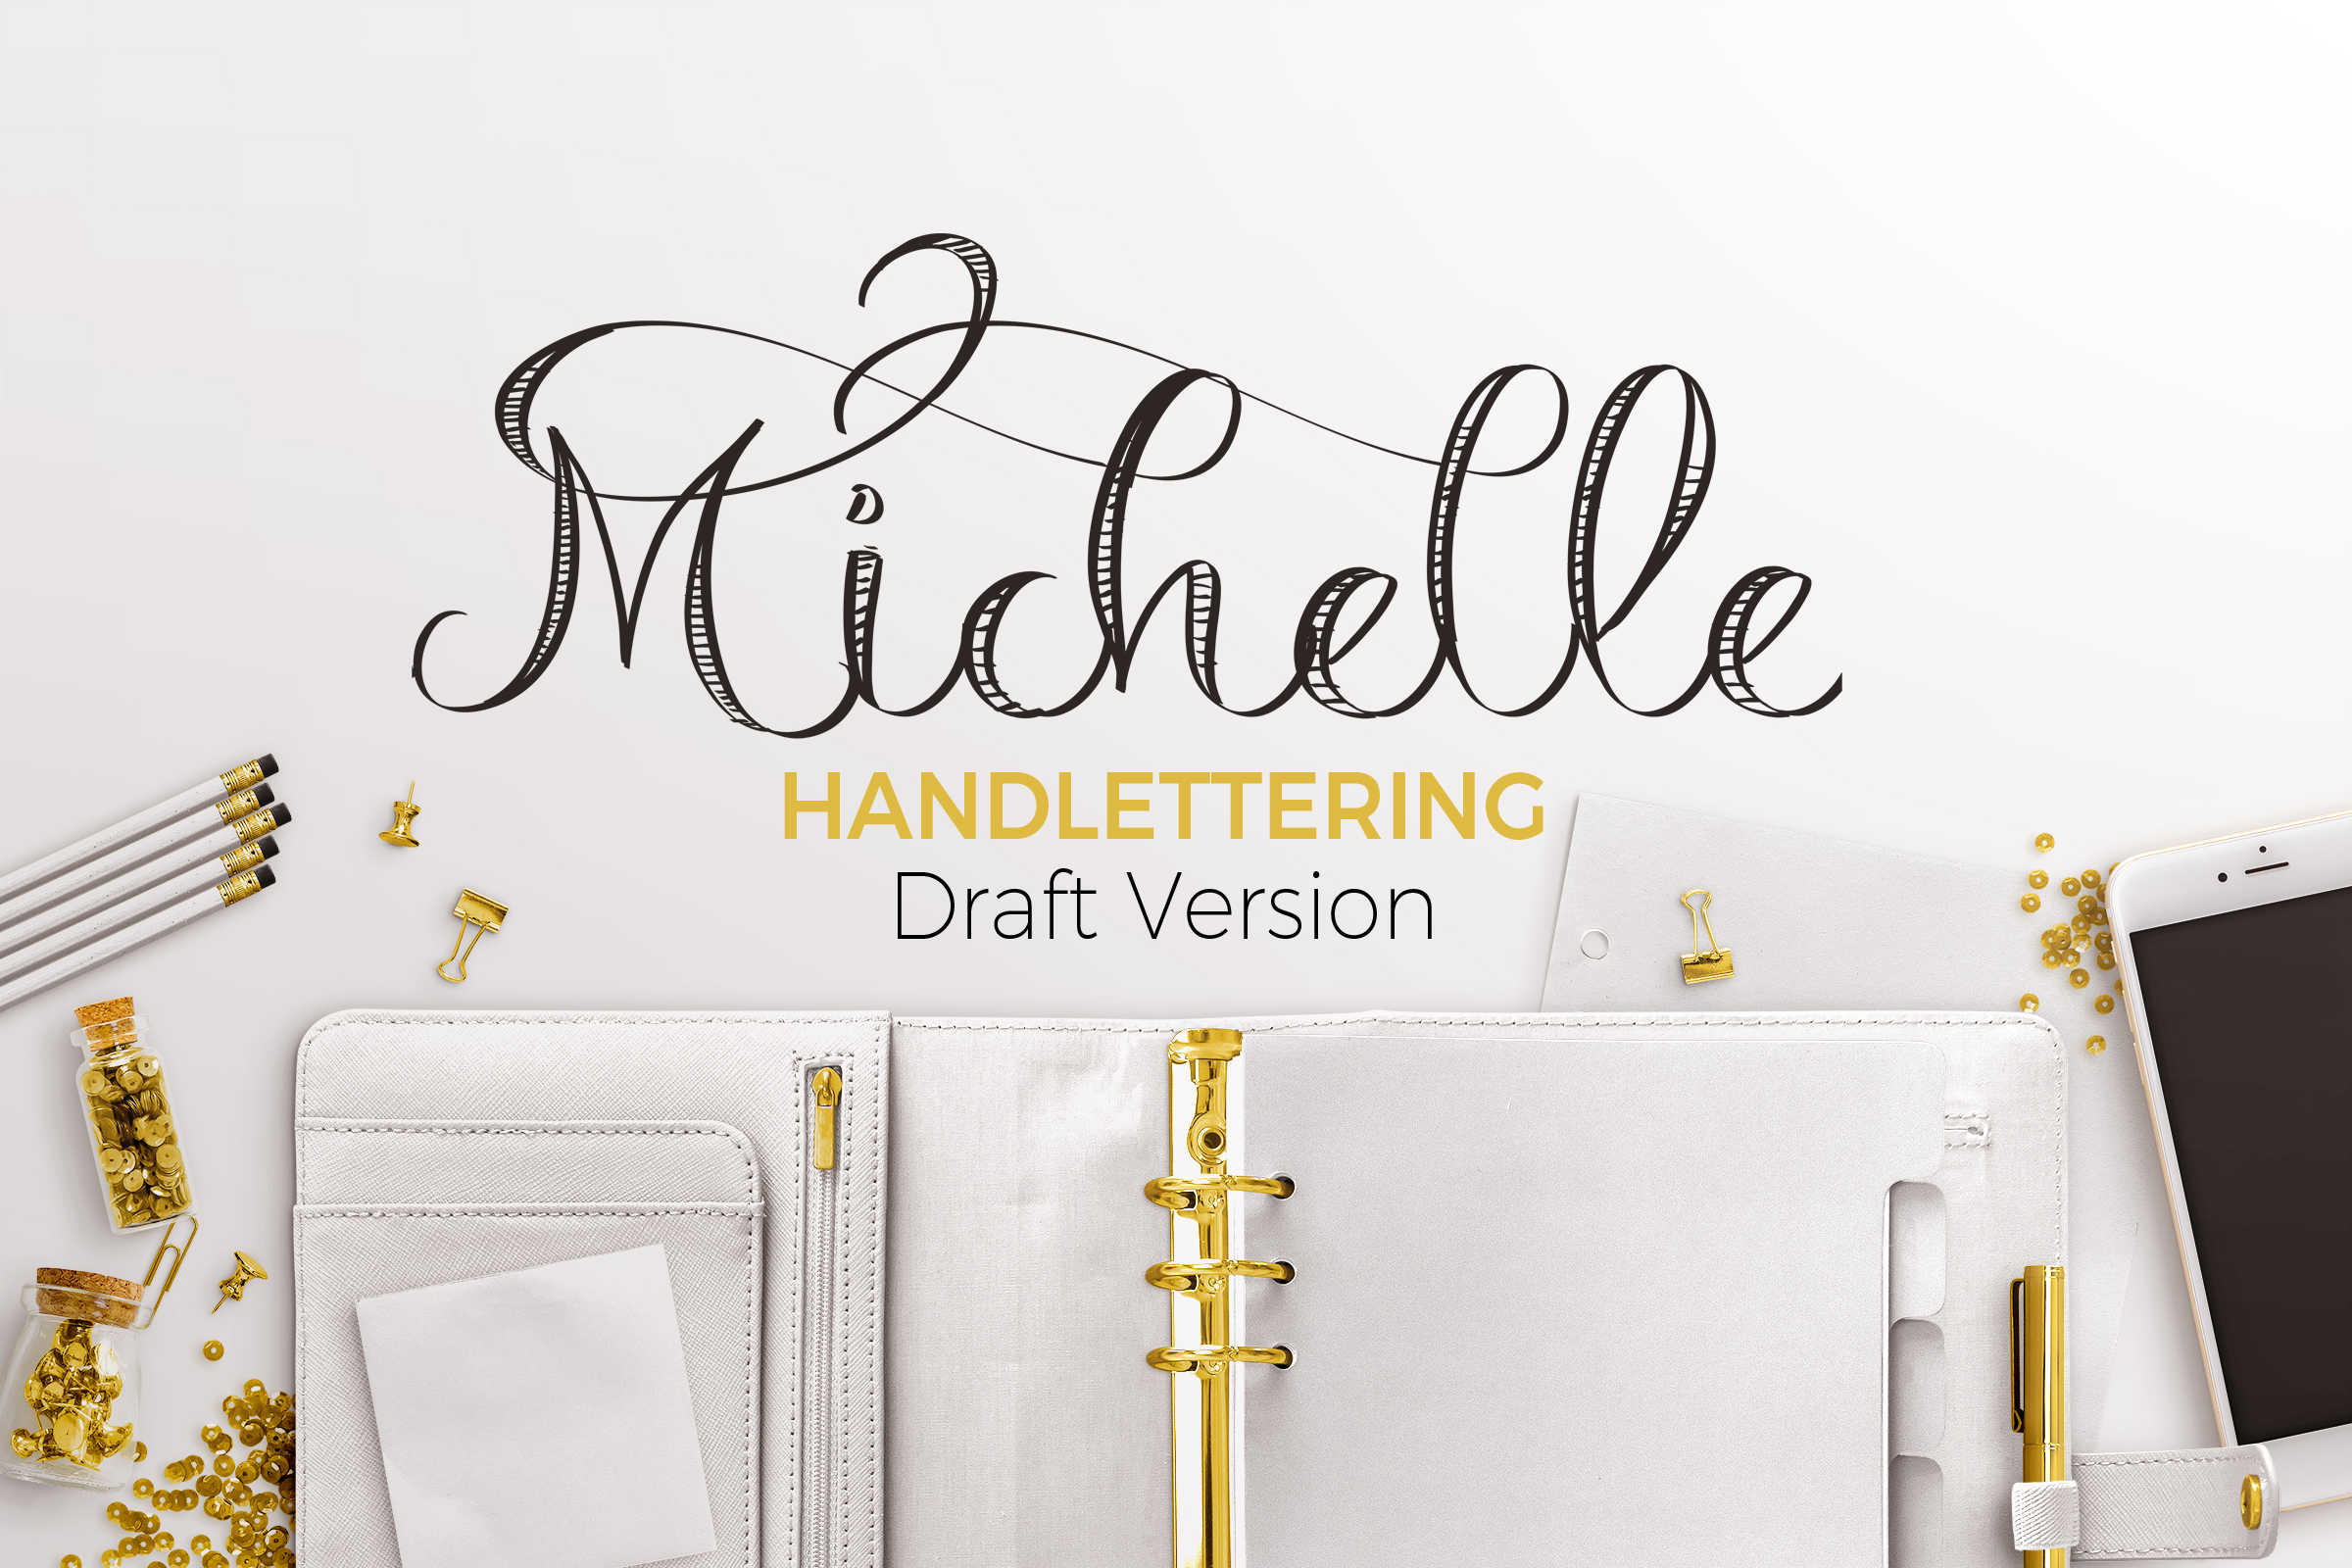 Michelle Handelettering  example image 1